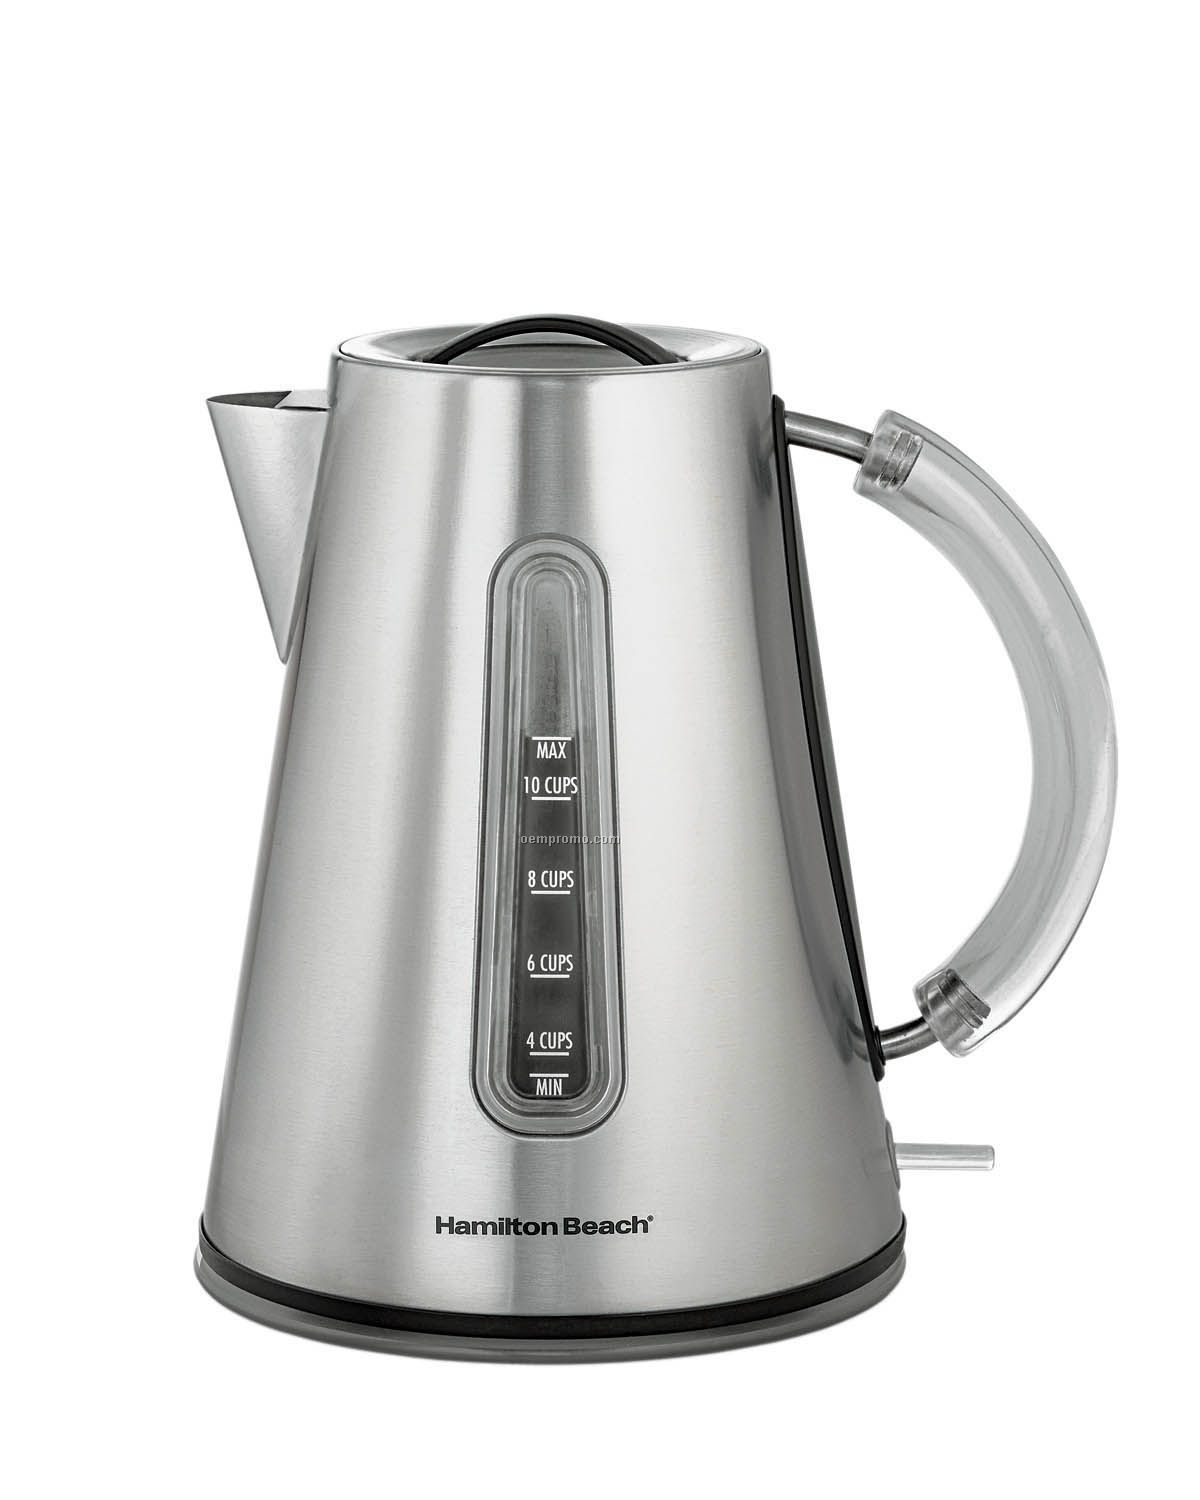 Hamilton Beach 10 Cup Stainless Steel Kettle